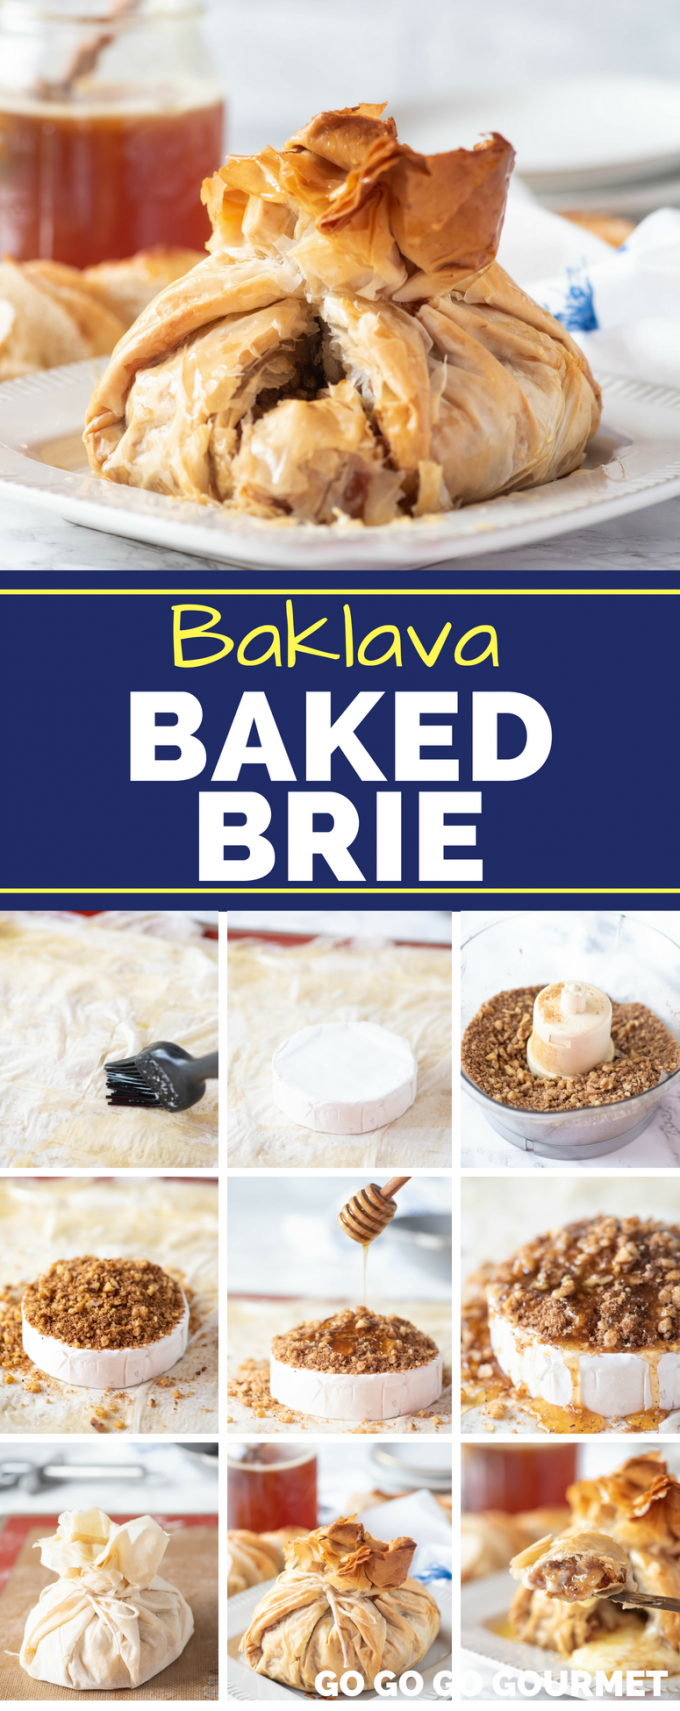 This easy Baklava Baked Brie will become one of your new favorite appetizer recipes! Made perfectly sweet form the honey, this recipe uses phyllo dough rather than puff pastry, to provide a nice crunch. #baklavabakedbrie #easybakedbrierecipes #easyappetizerrecipes #gogogogourmet